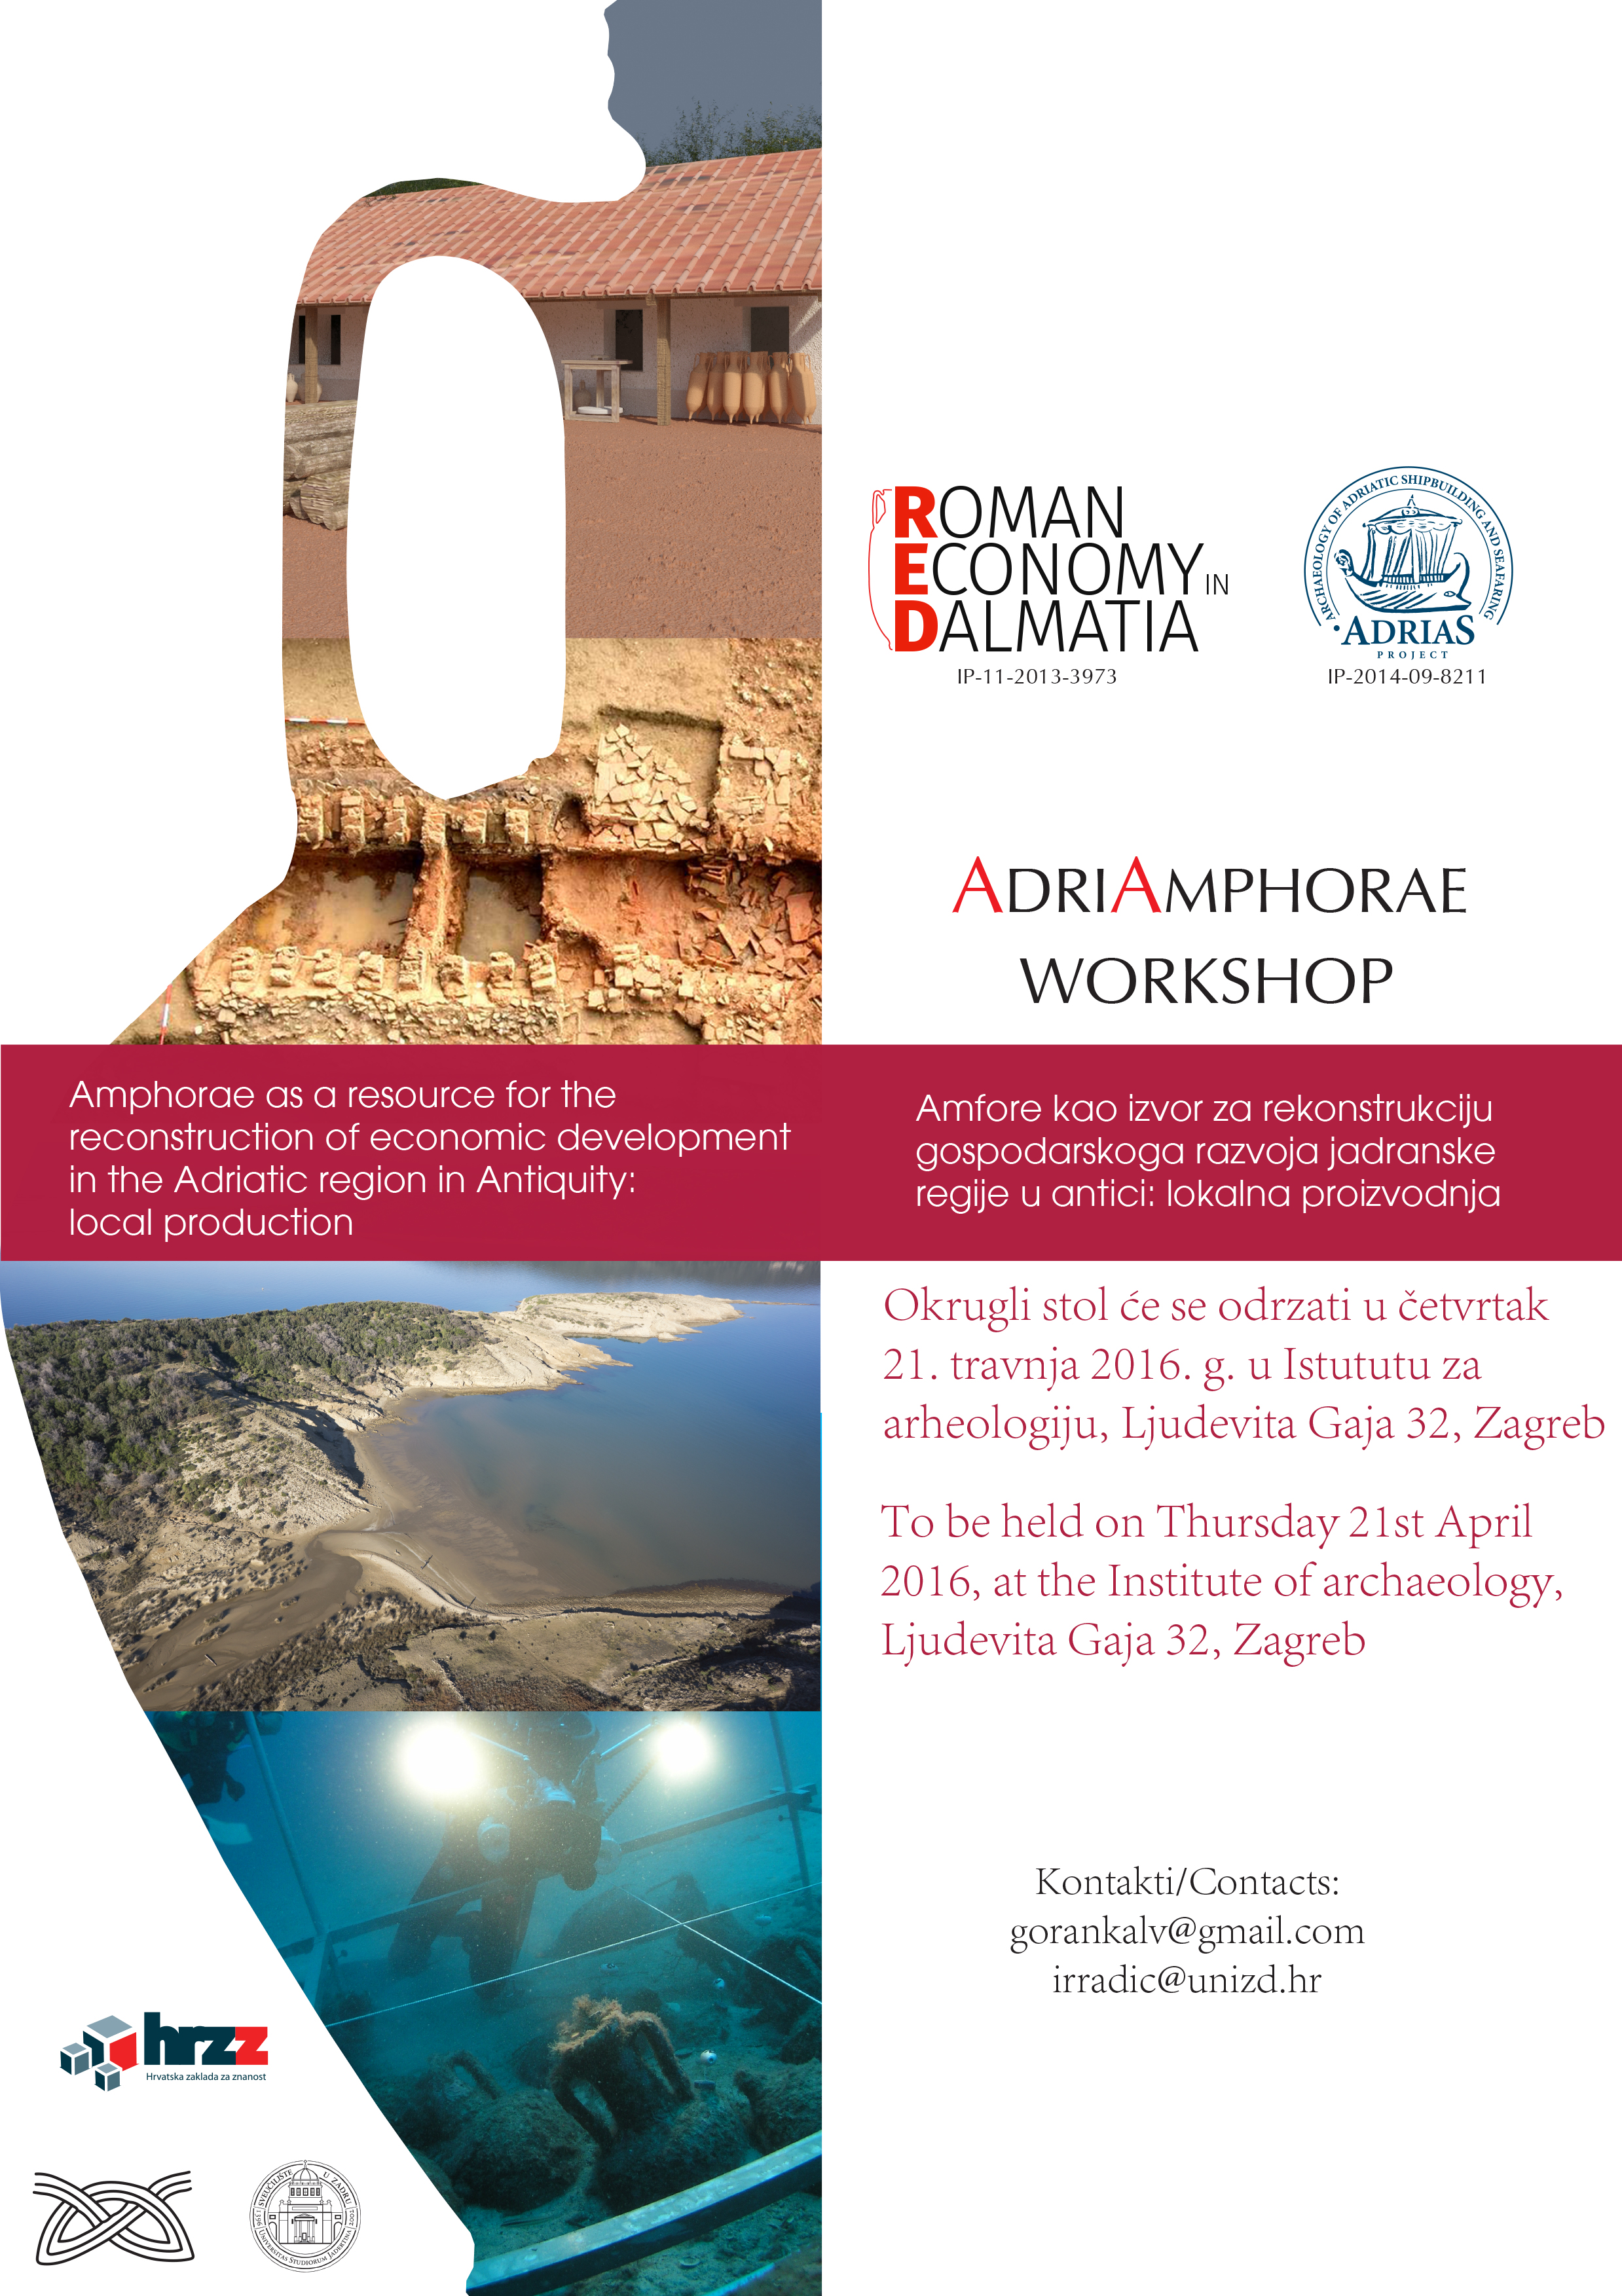 AdriAmphorae - Amphorae as a resource for the reconstruction of economic development in the Adriatic region in Antiquity: local production